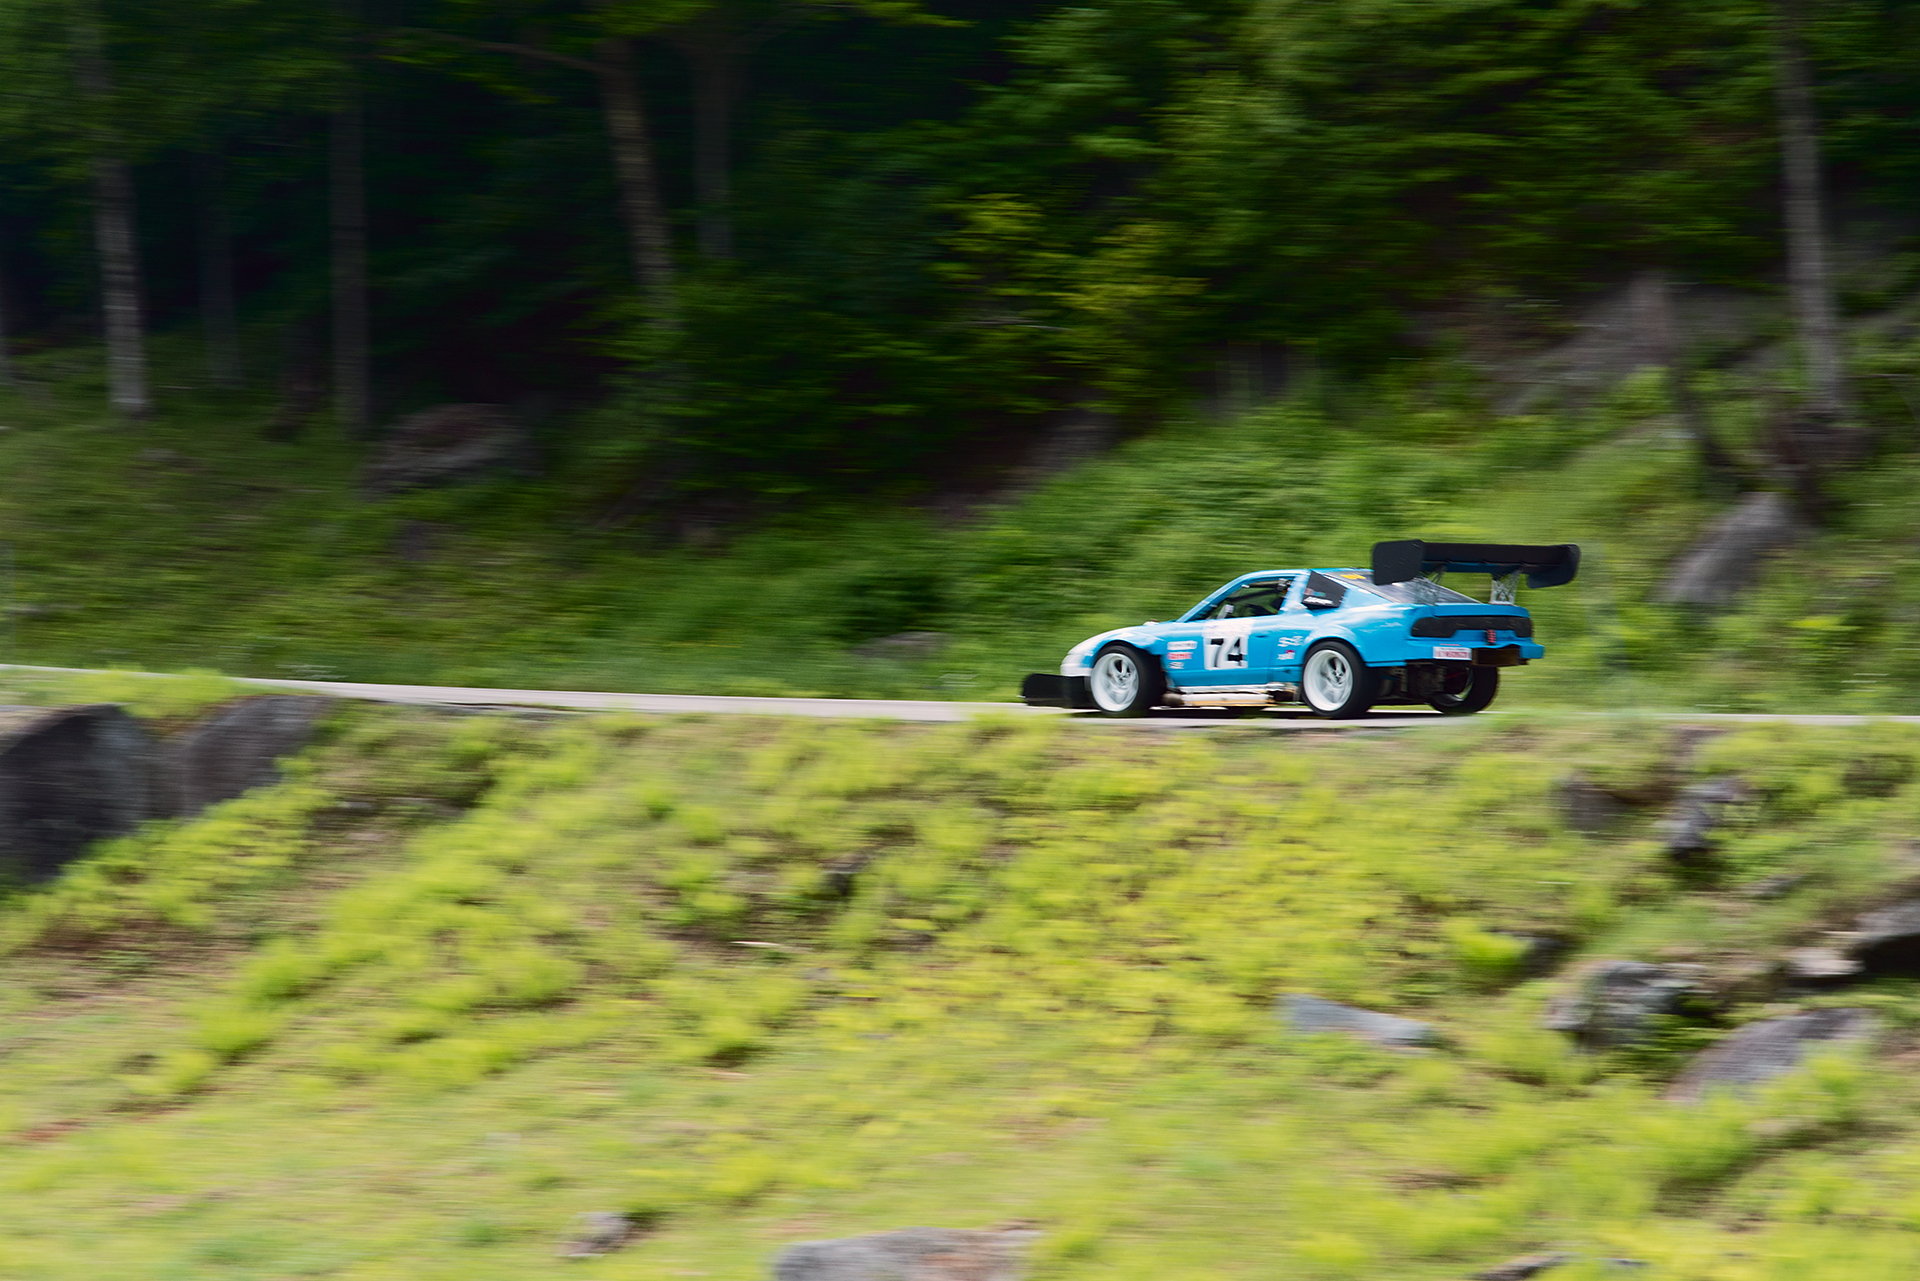 Car 74 at Climb to the Clouds 2017